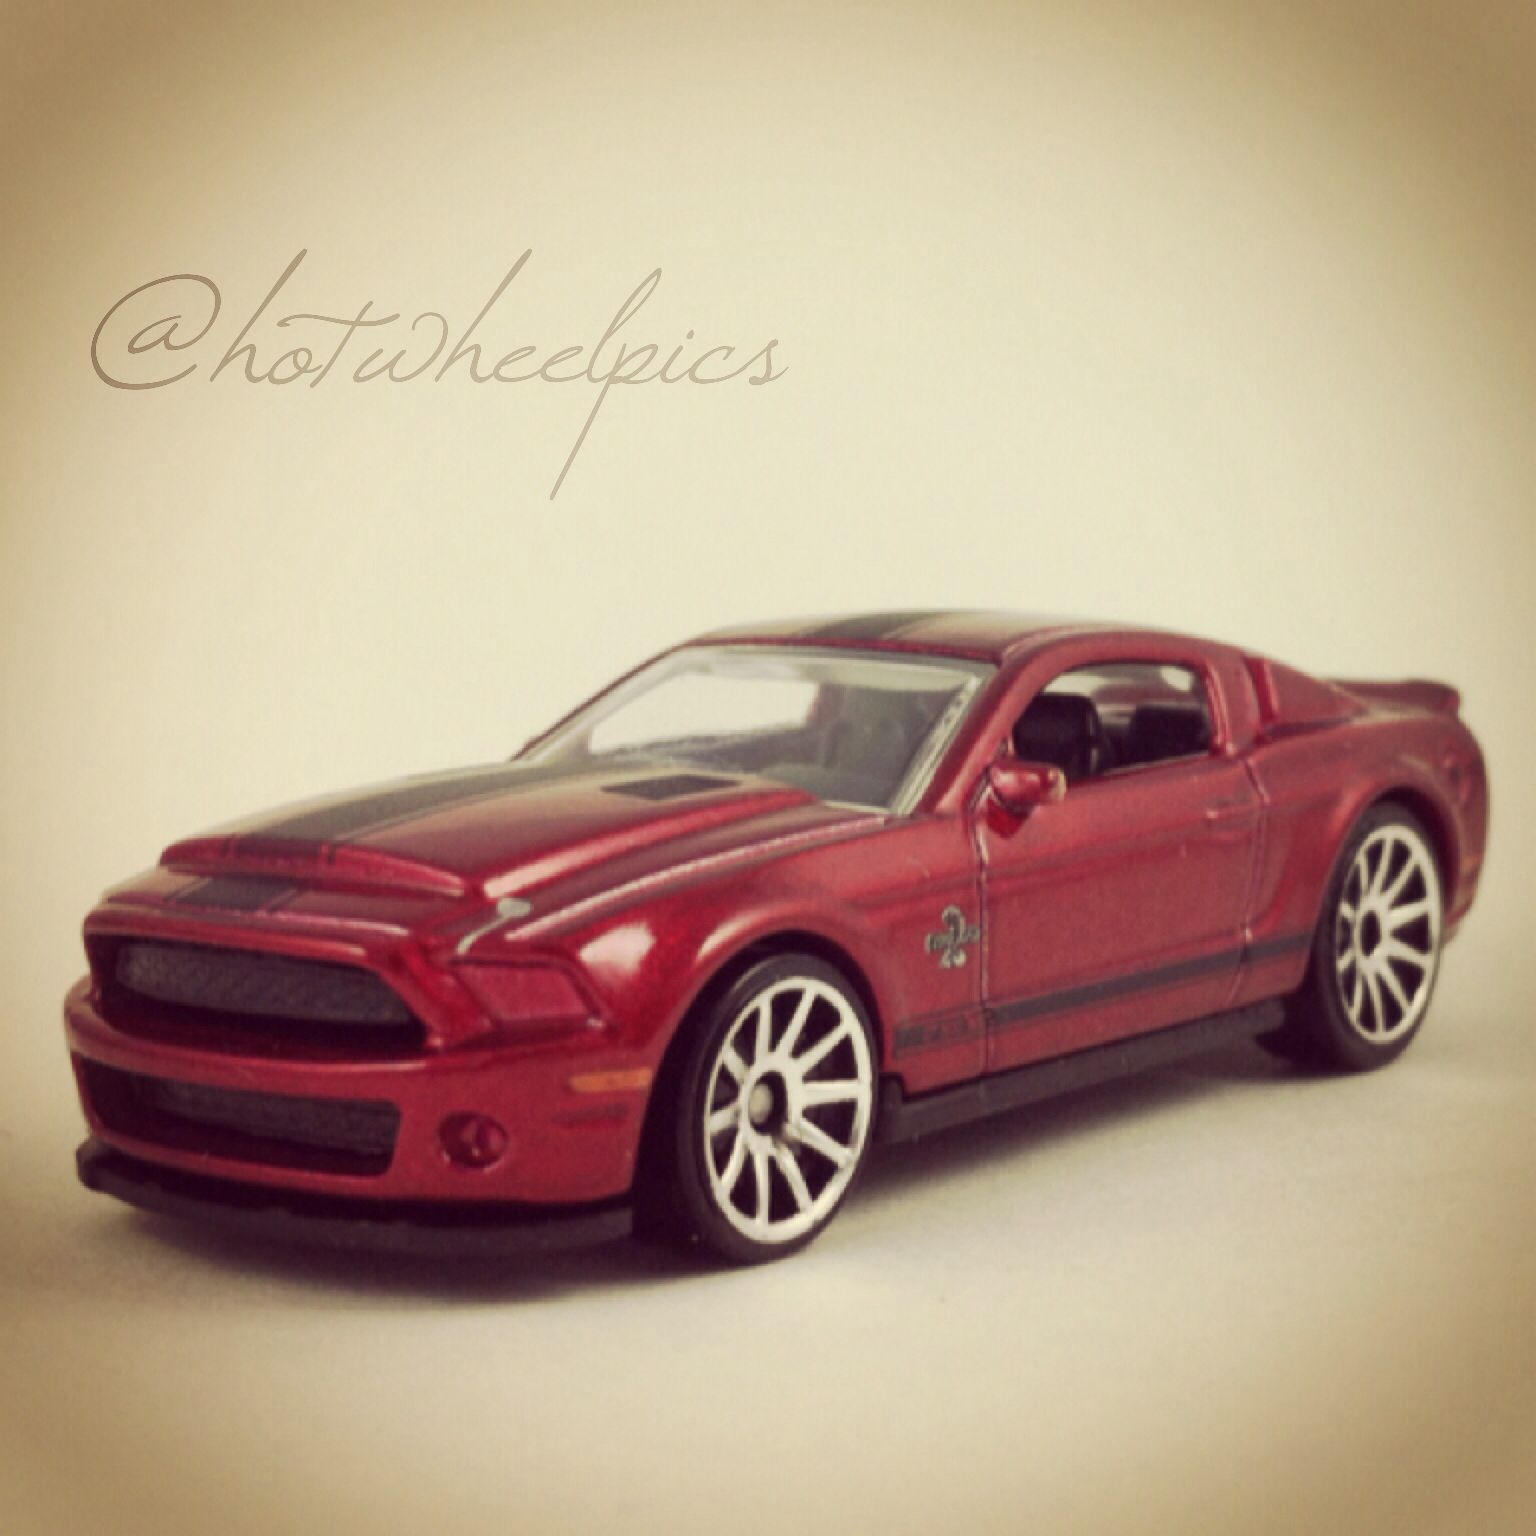 10 Ford Shelby Gt500 Super Snake 2011 Hot Wheels New Models Hotwheels Toys Ford Mustang Shelby Ford Shelby Gt 500 Hot Wheels Shelby Gt